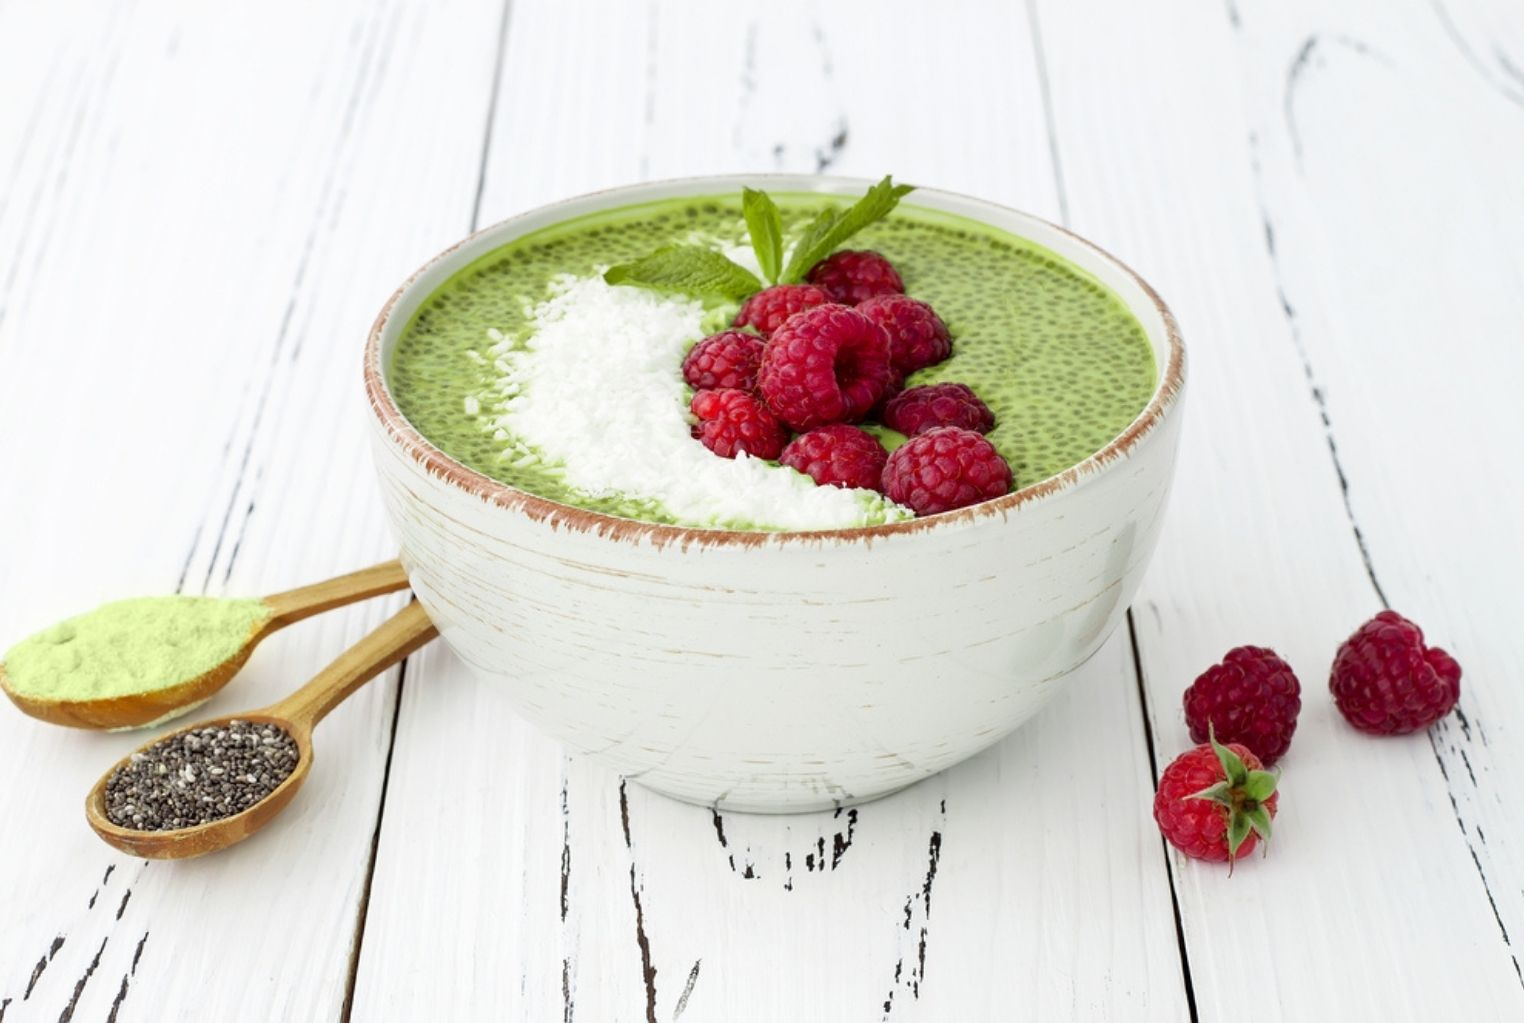 Bowl of a green matcha and chia smoothie topped with shredded coconut and whole raspberries.